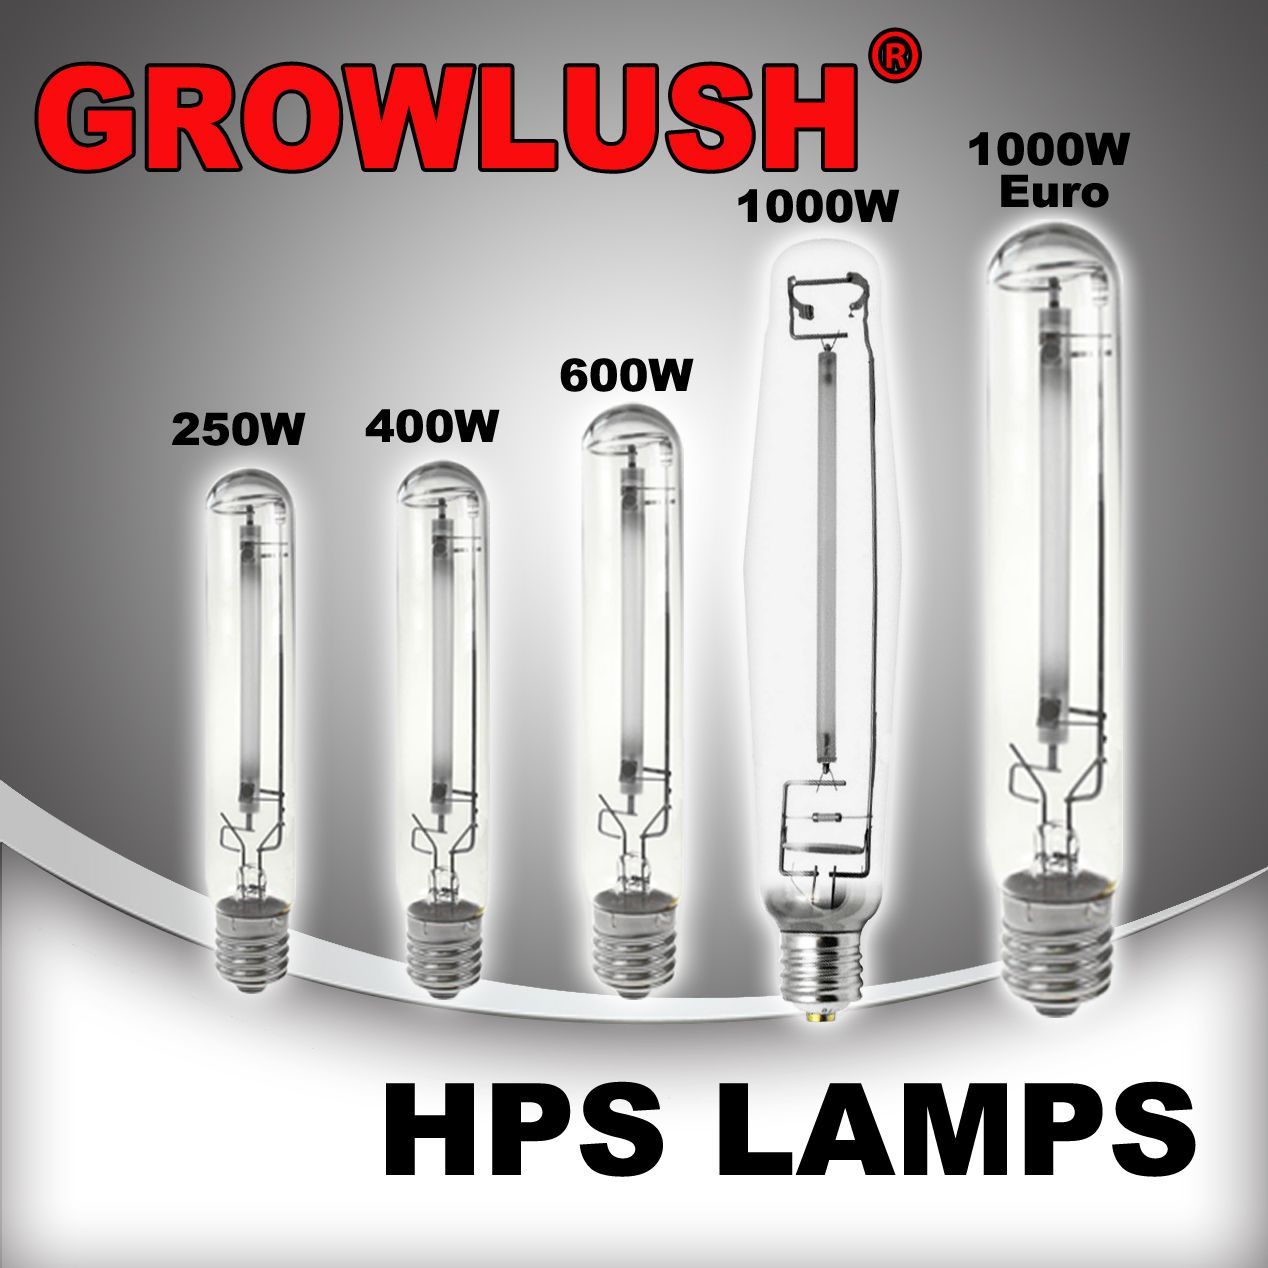 growlushhpslamps.jpg